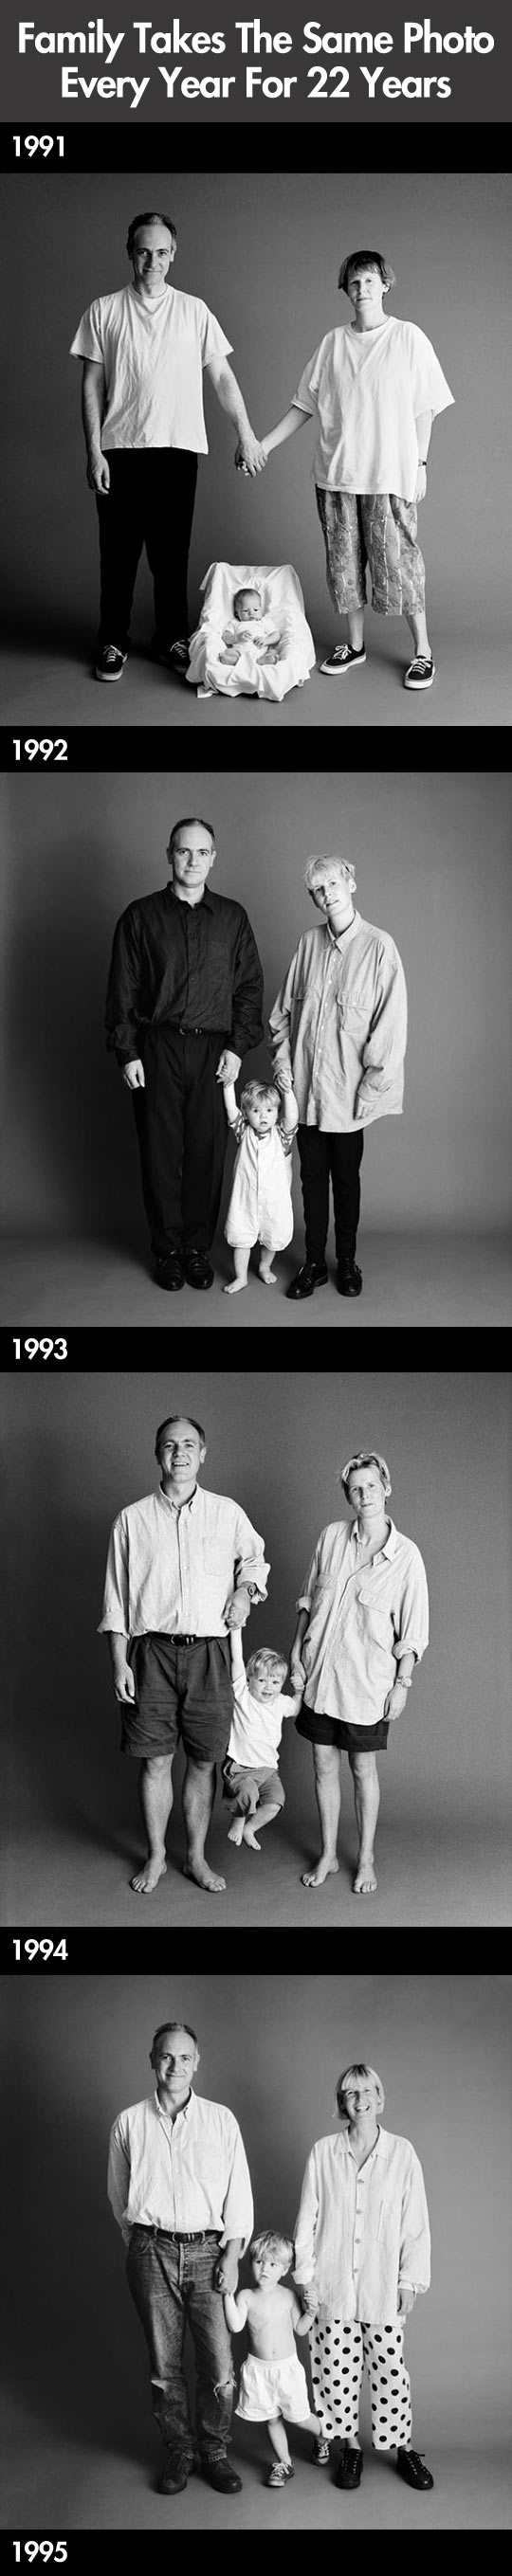 The same photo for 22 years...